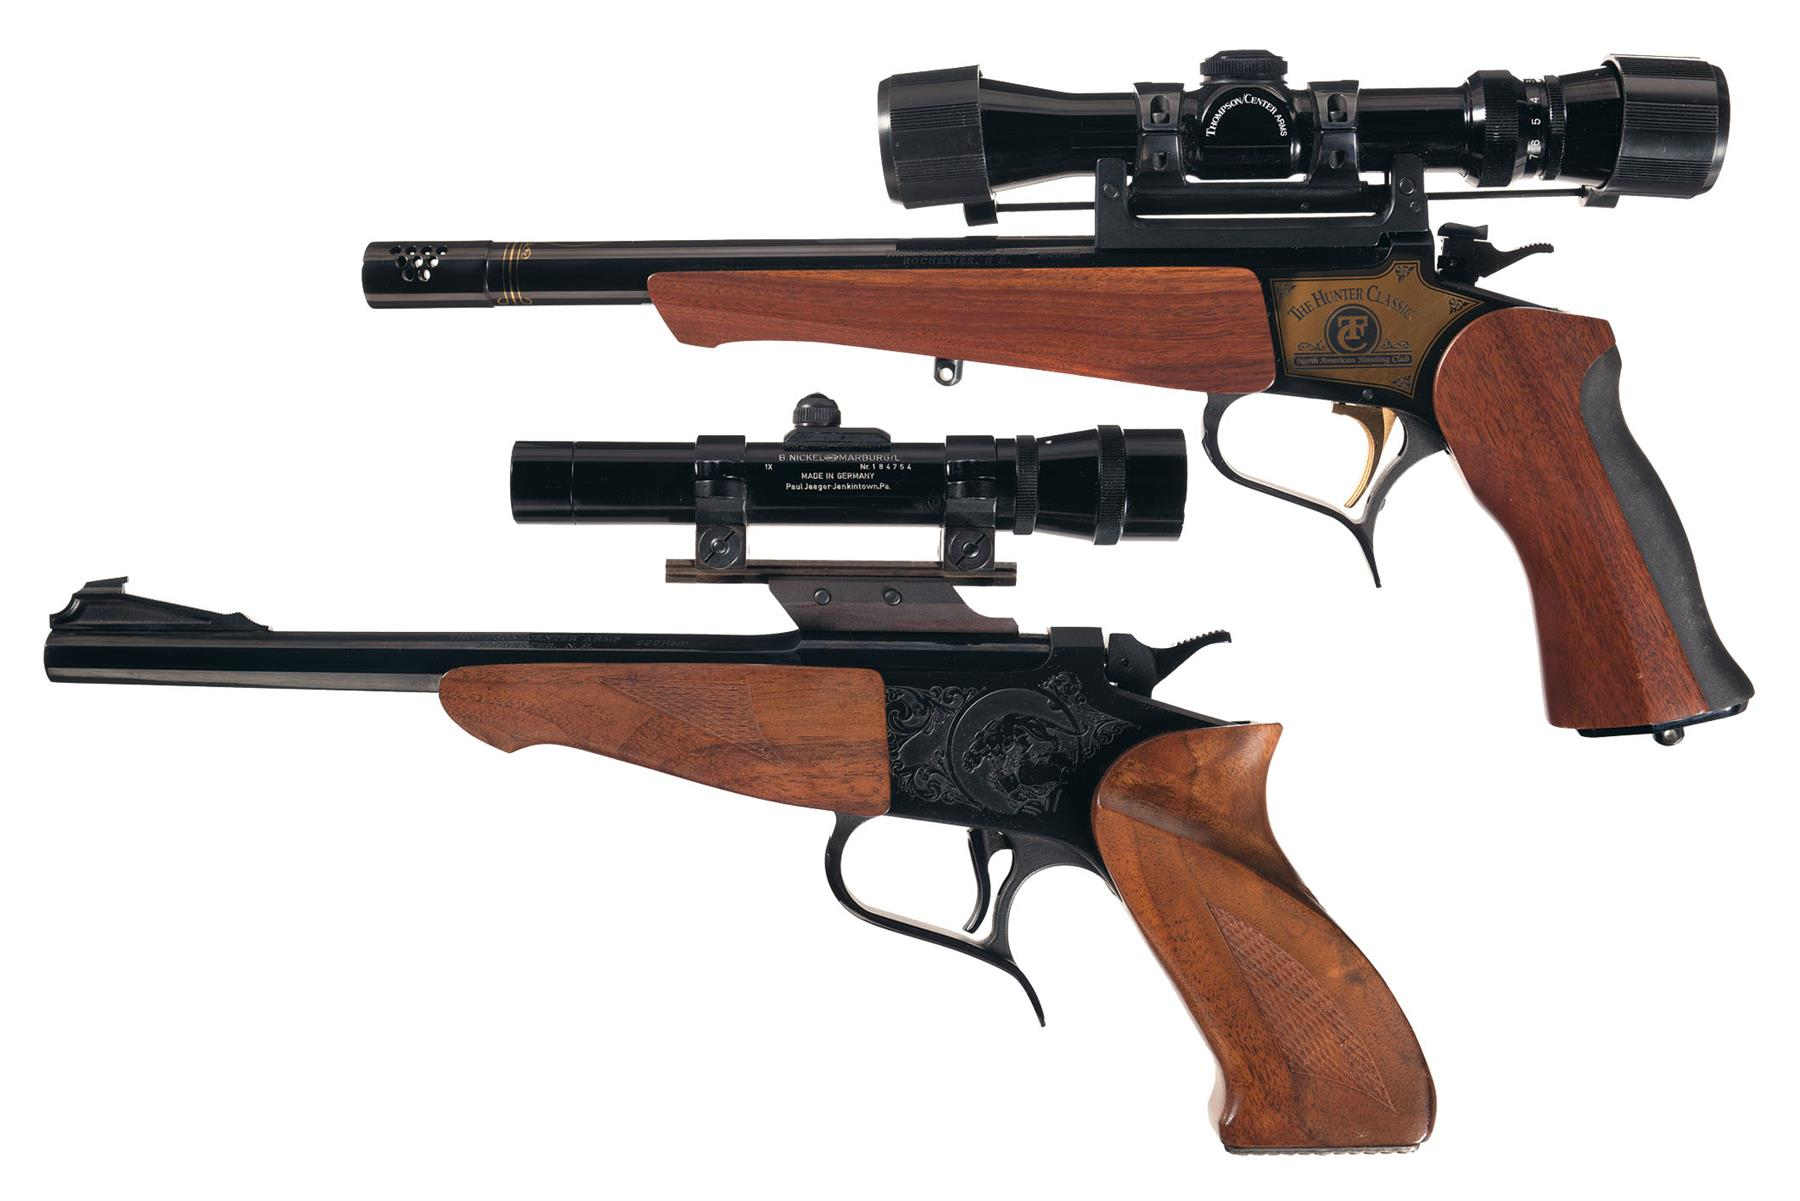 Two Thompson Center Arms Single Shot Pistols